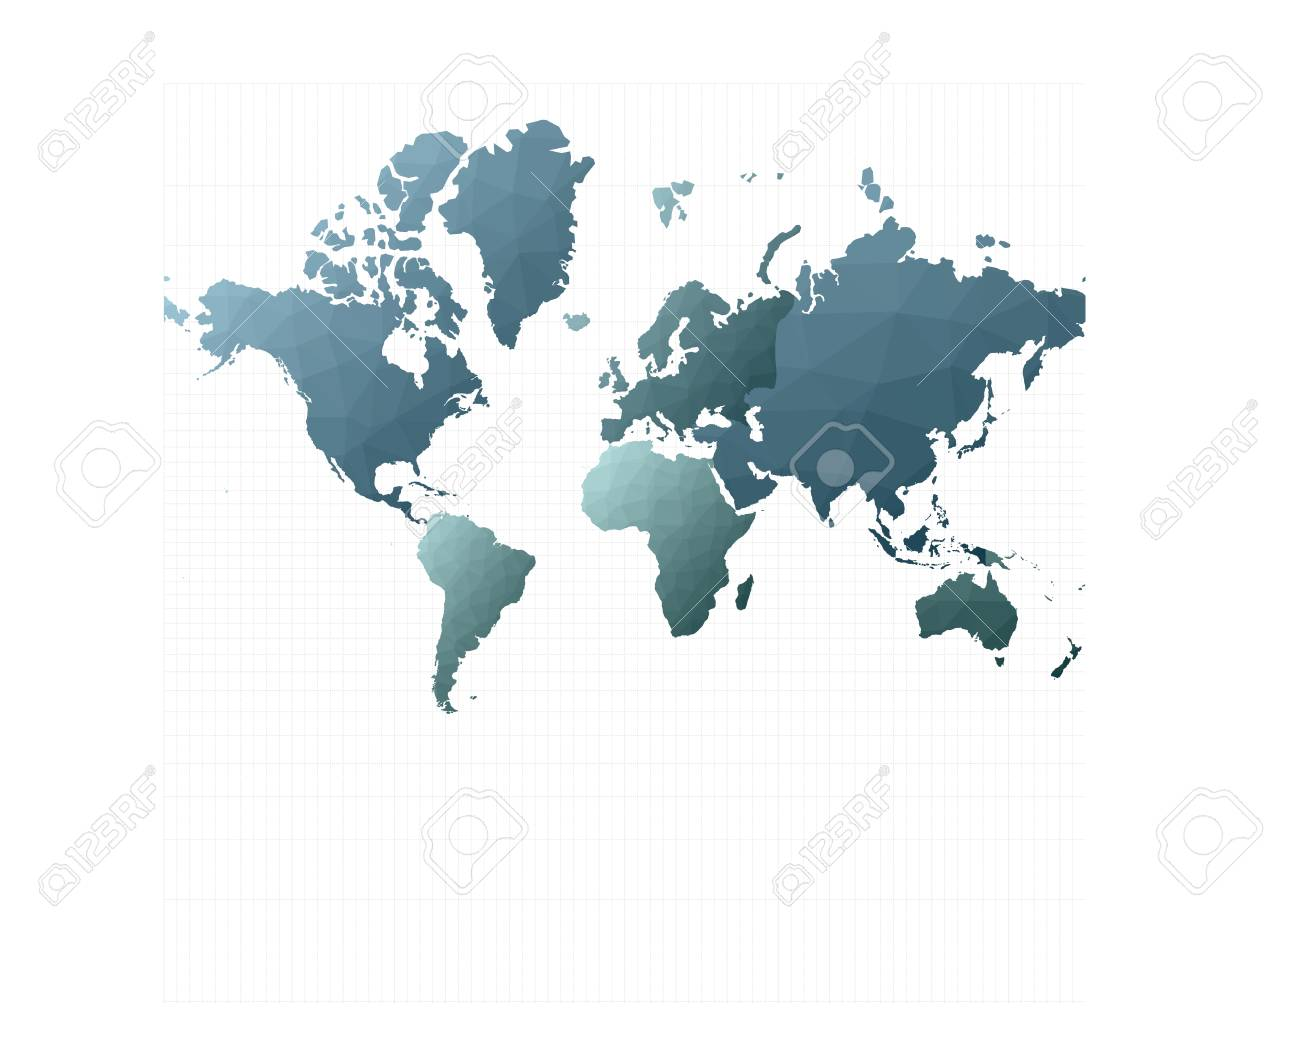 Illustration Of Projection Maps on model of map, set of map, photography of map, drawing of map, map of map, animation of map, texture of map, element of map, depression of map, shape of map, scale of map, type of map, view of map, orientation of map,